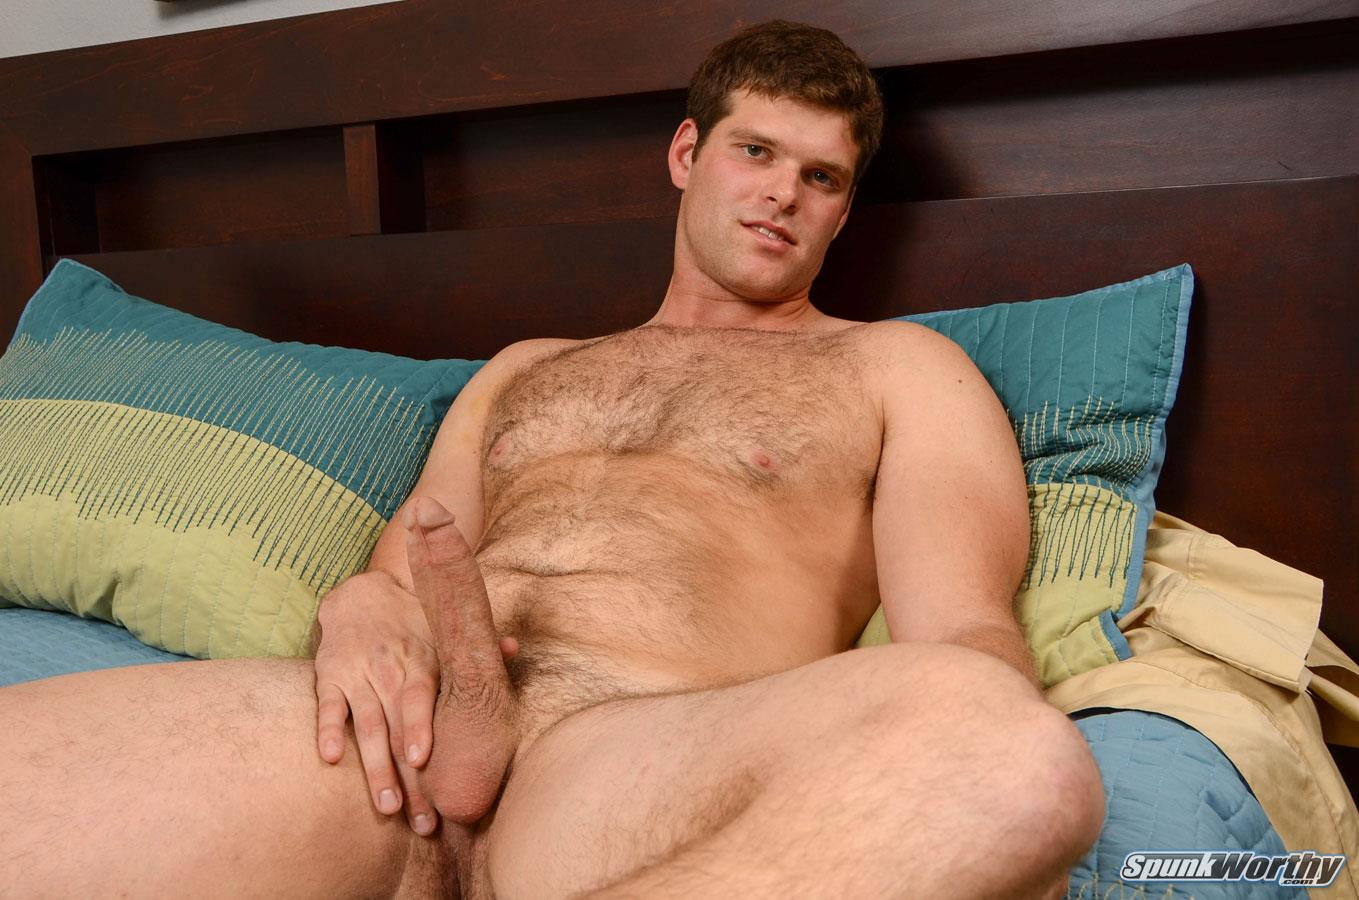 SpunkWorthy Jake Straight Hairy Navy Bear Cub Jerking Off Amateur Gay Porn 08 Straight Hairy Navy Bear Cub Jerks His Hairy Cock